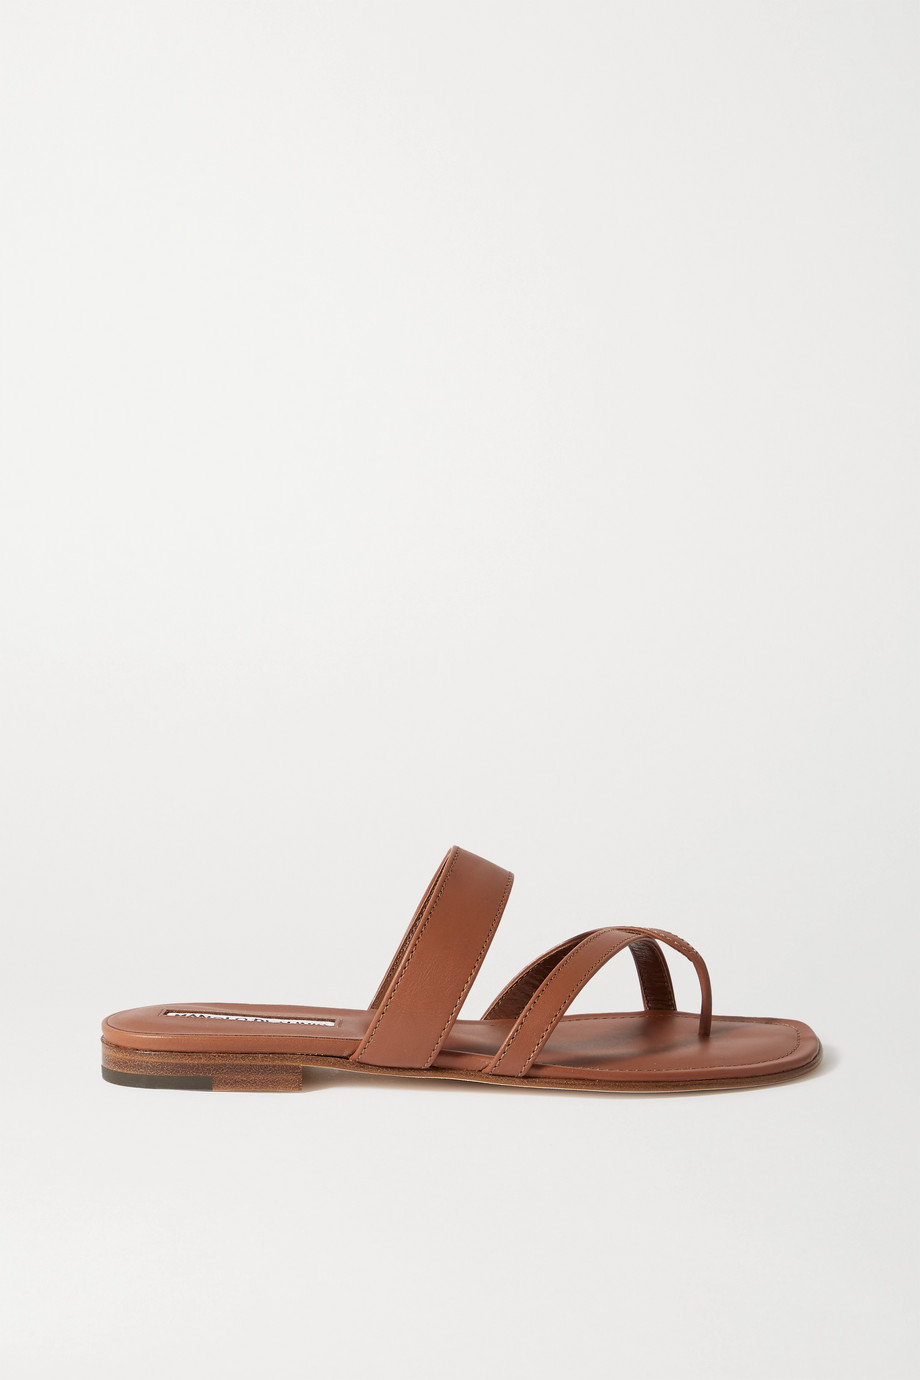 Manolo Blahnik Susa leather sandals